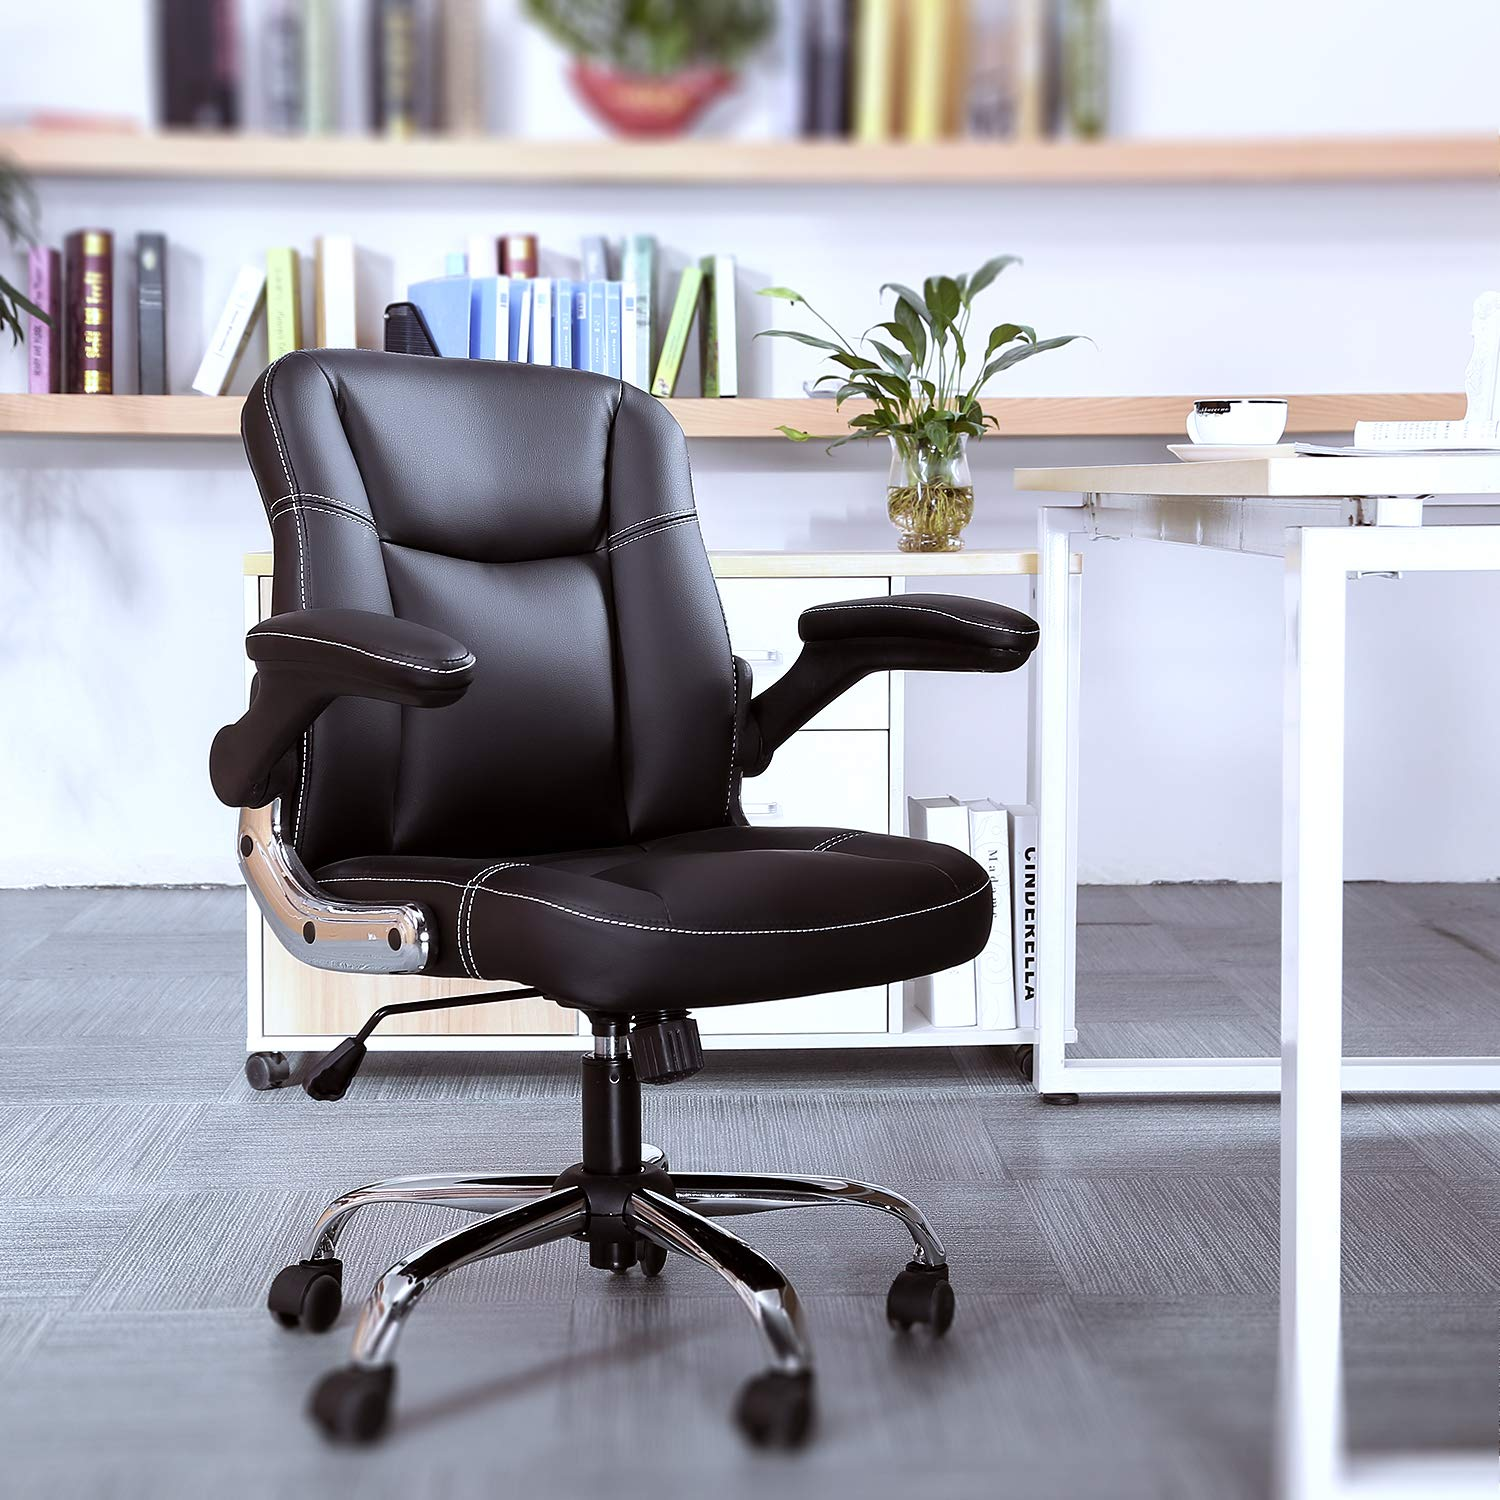 Myka's Ergonomic Leather Executive Office Chair High Back Computer Chair with Upholstered Armrest Brown by Myka's